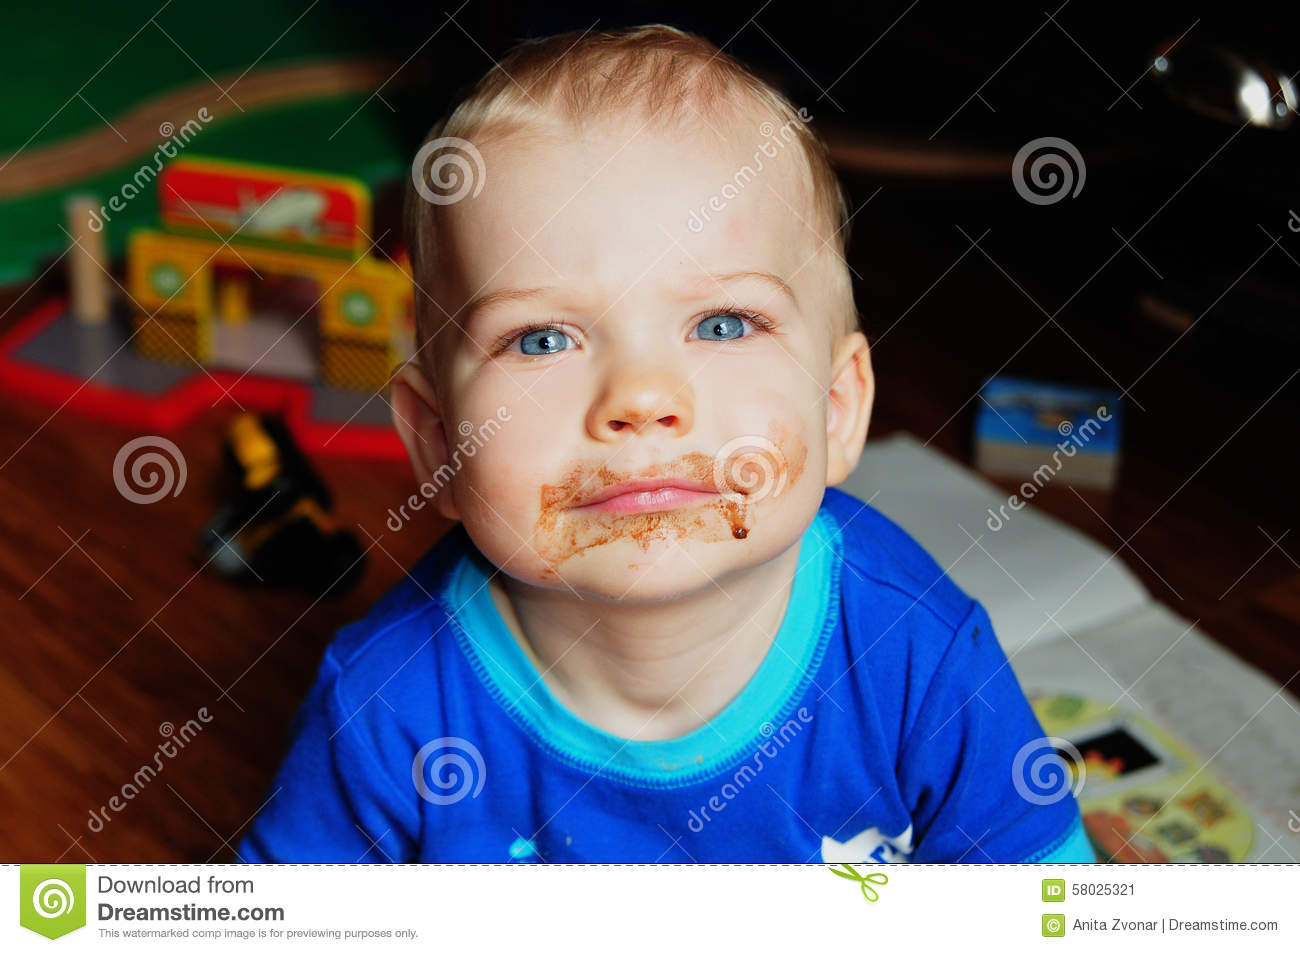 Baby With Chocolate On Face Stock Photo - Image: 58025321